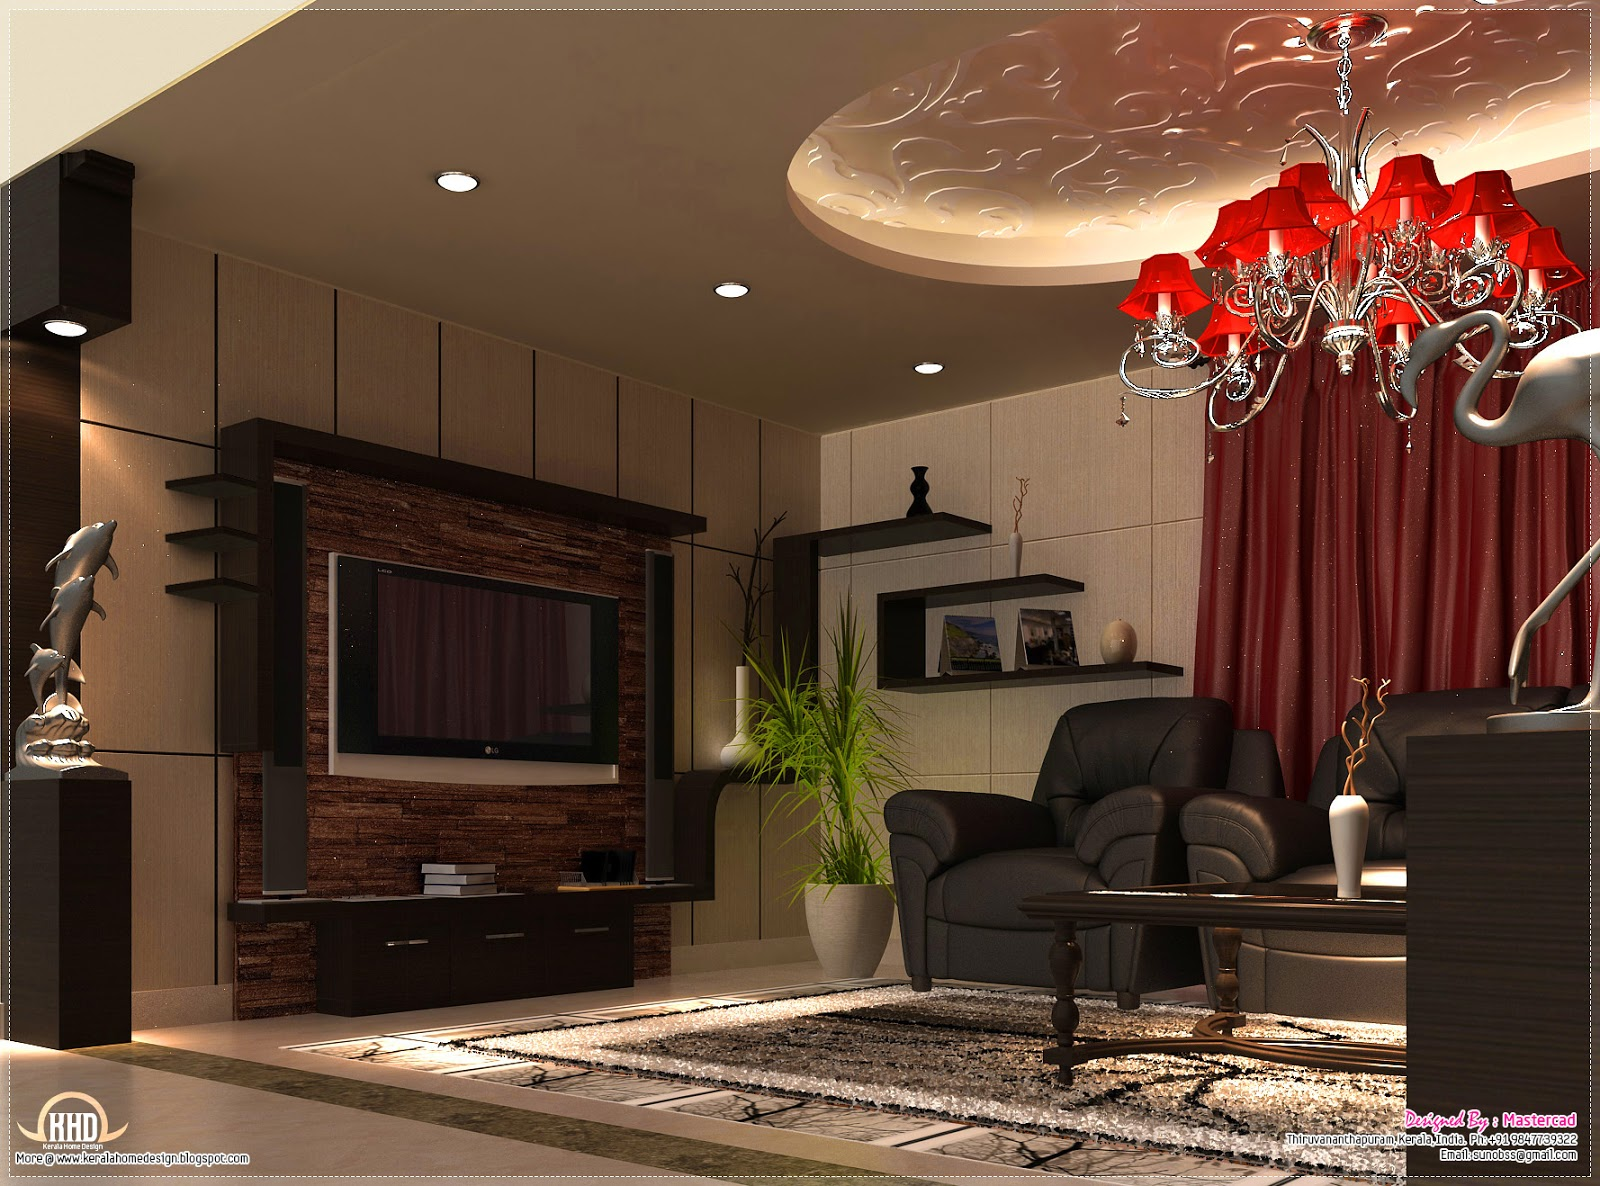 Interior design ideas kerala home design and floor plans for Interior design for living room chennai